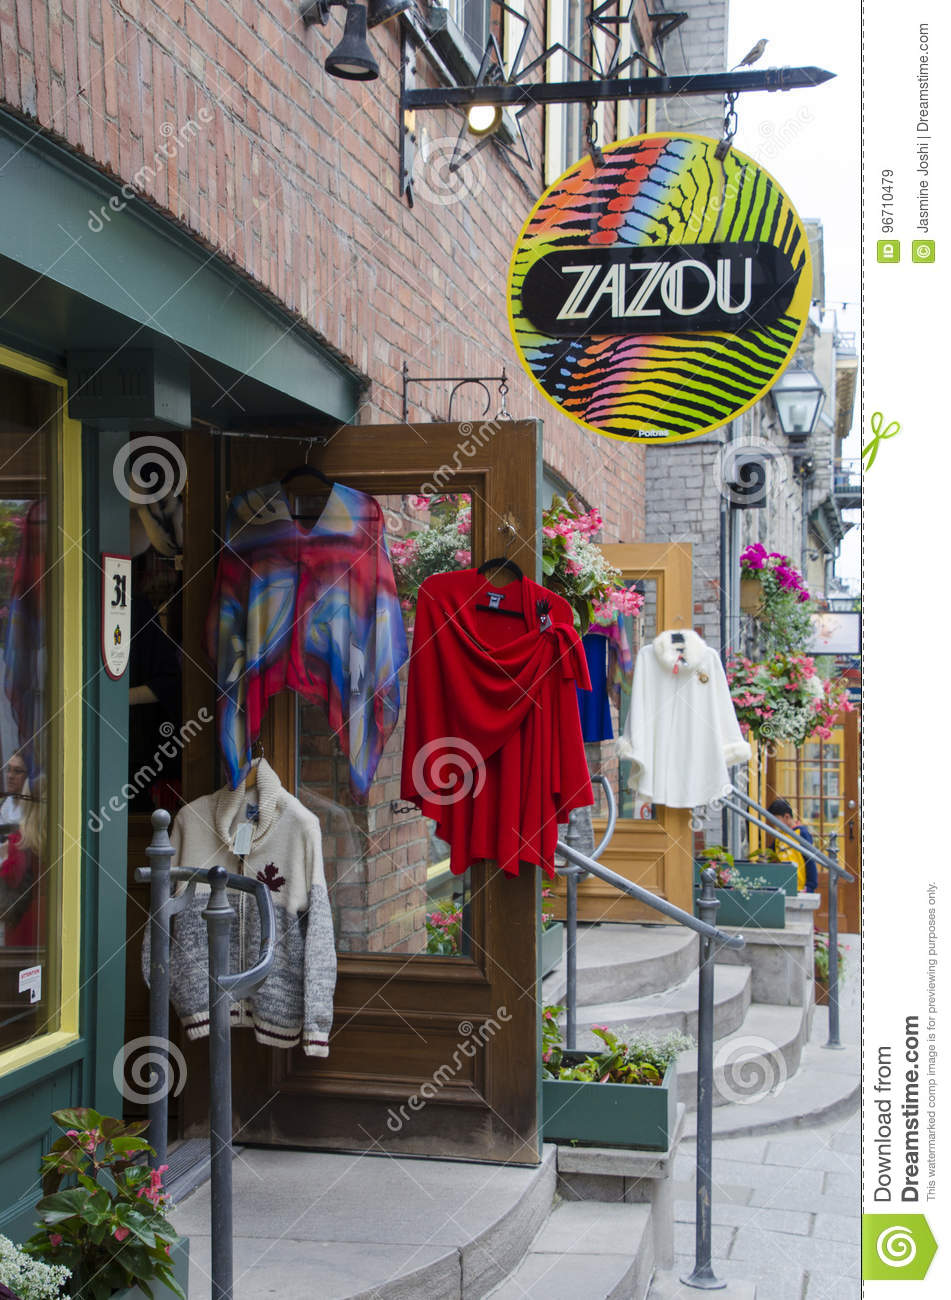 Clothes Stores In Old Quebec Editorial Stock Image - Image of model on winnipeg canada stores, alberta canada stores, new york stores, brazil stores, south carolina stores, quebec art, windsor canada stores, france stores, ottawa canada stores,